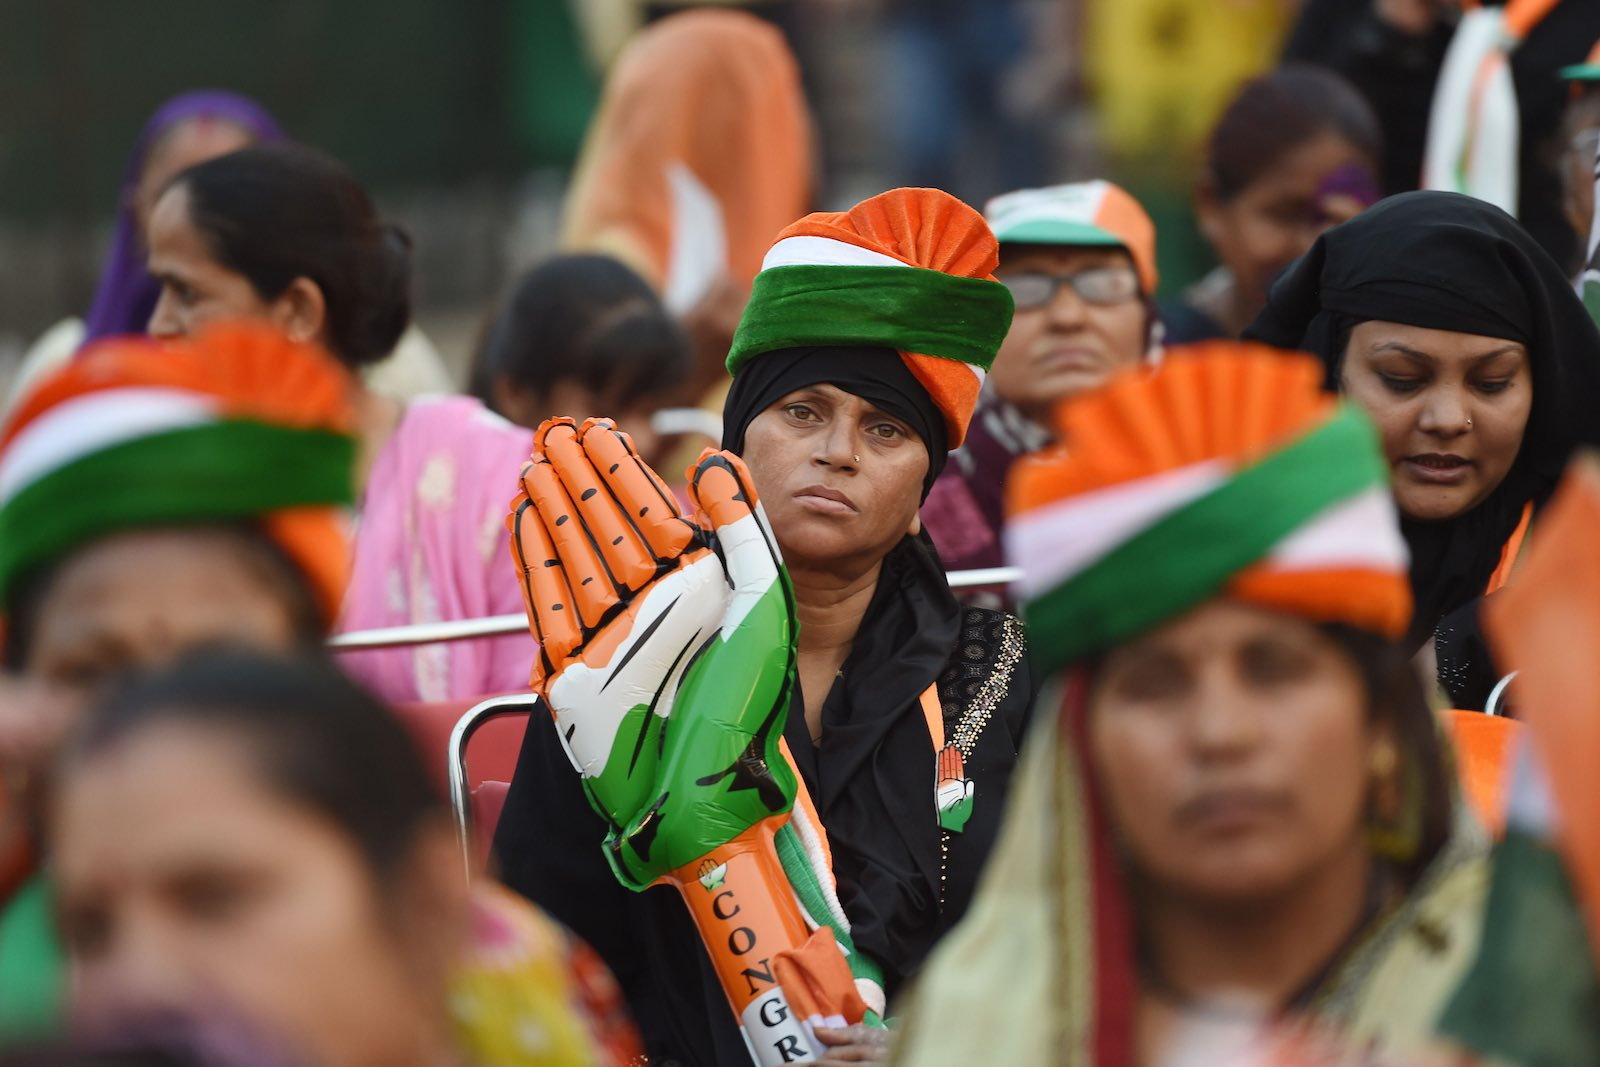 India's Congress party stares at extinction